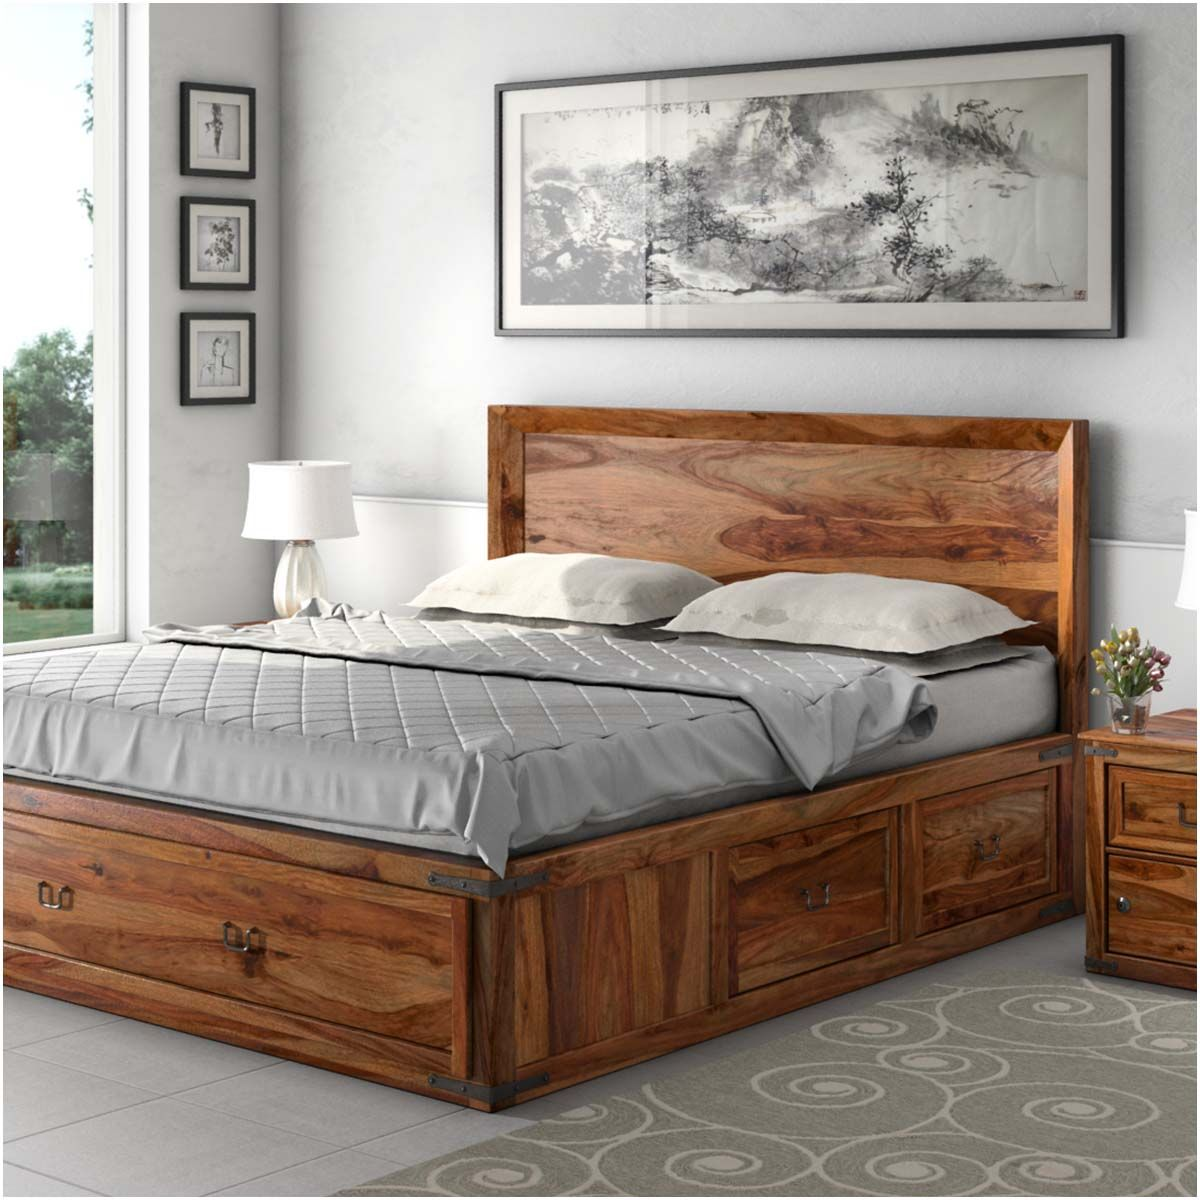 Tips And Ideas Around The Topic Of Solid Wood Beds Solid Wood